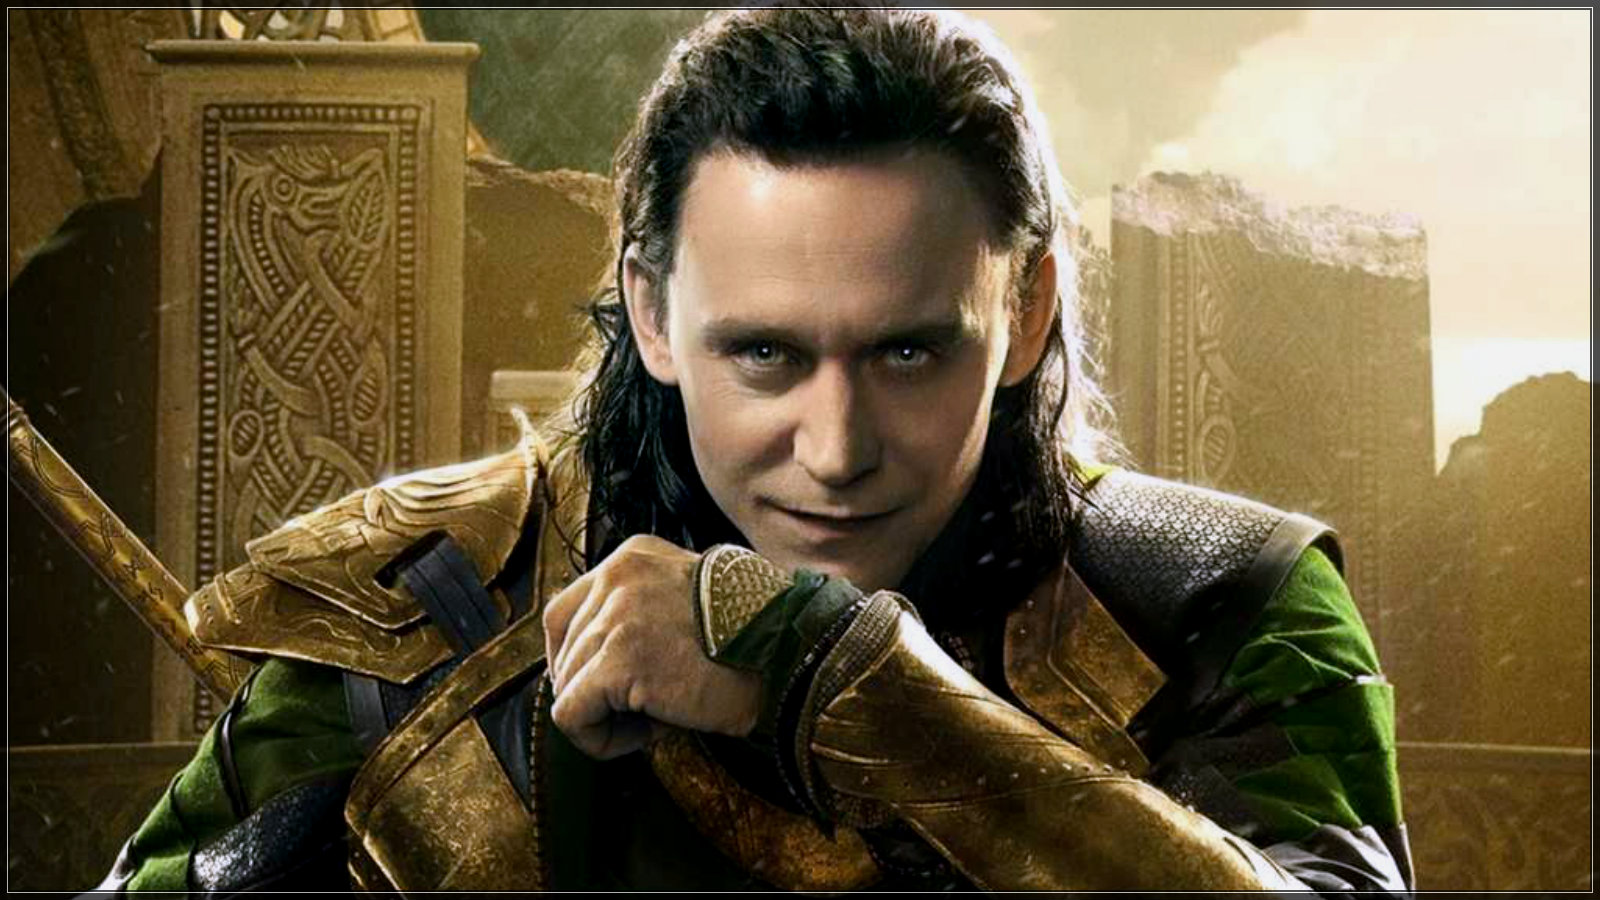 Jeϟϟi S Groupies Images Loki Tom Hiddleston Hd Wallpaper And